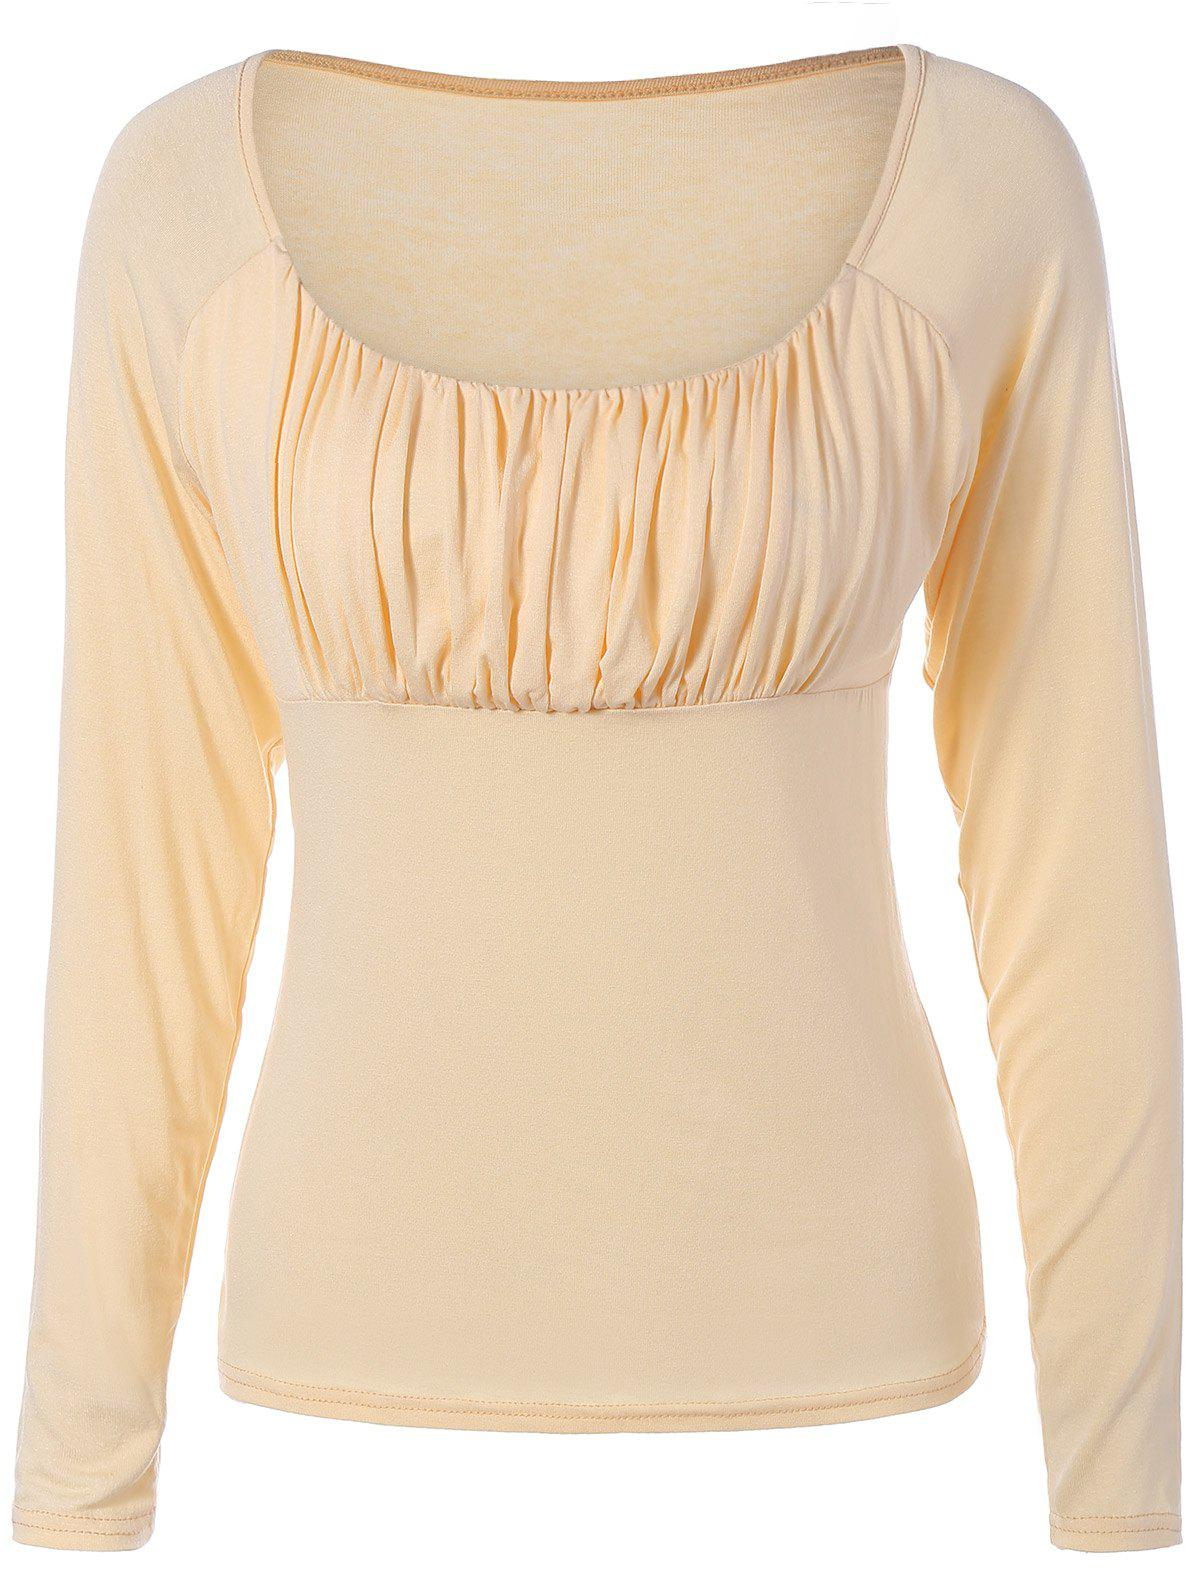 Chic Sweetheart Collar Solid Color Long Sleeve Pullover T-Shirt For Women - APRICOT M